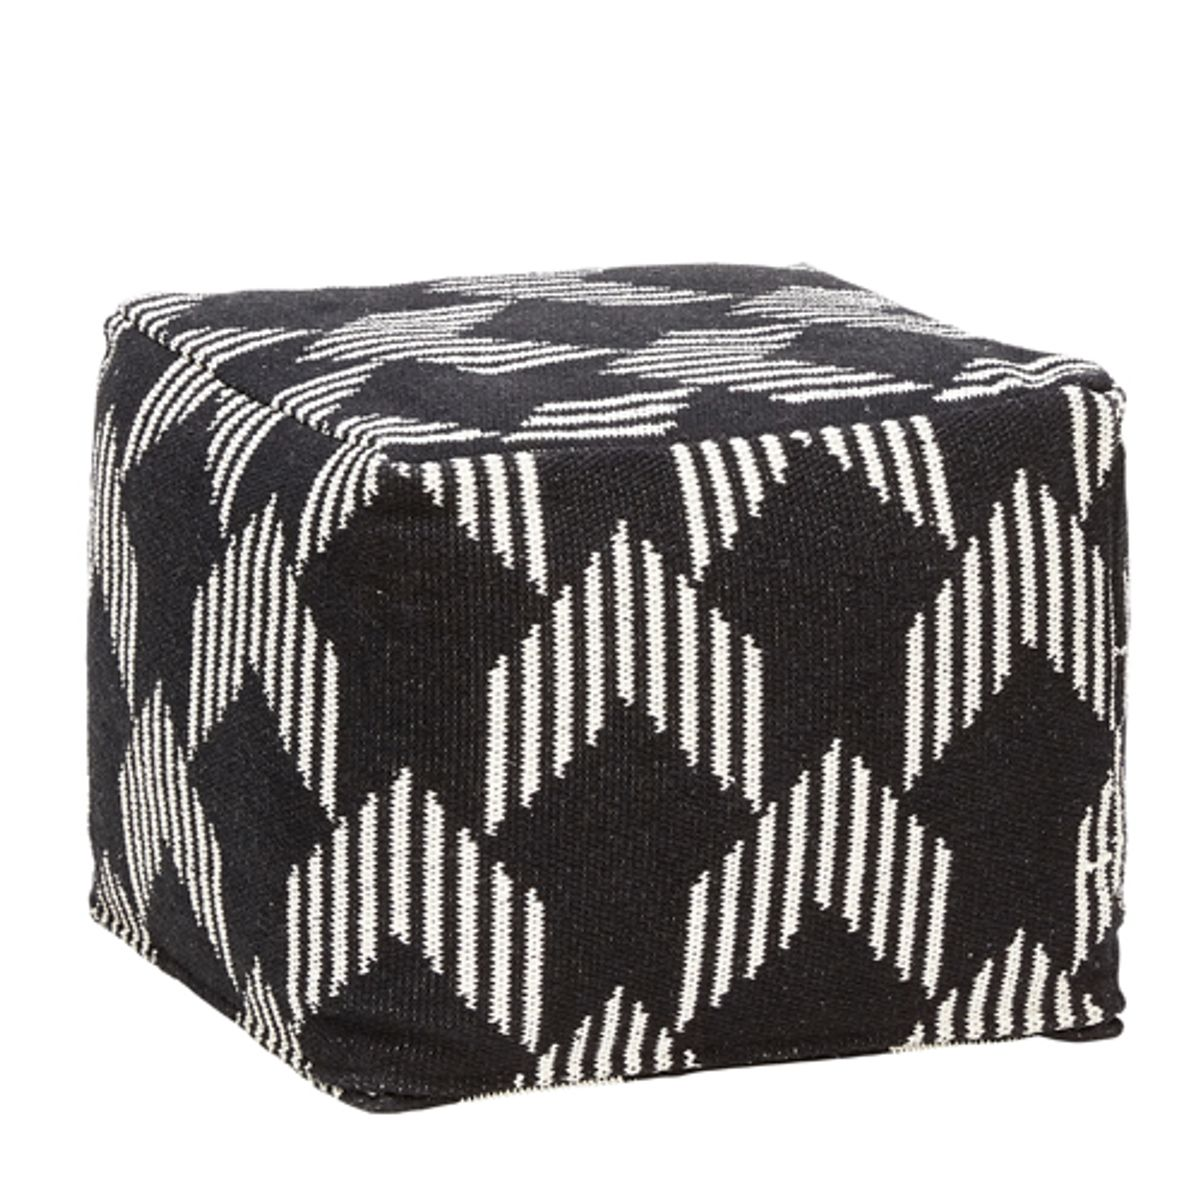 pouf carr en coton motifs graphiques blanc et noir h bsch decoclico. Black Bedroom Furniture Sets. Home Design Ideas